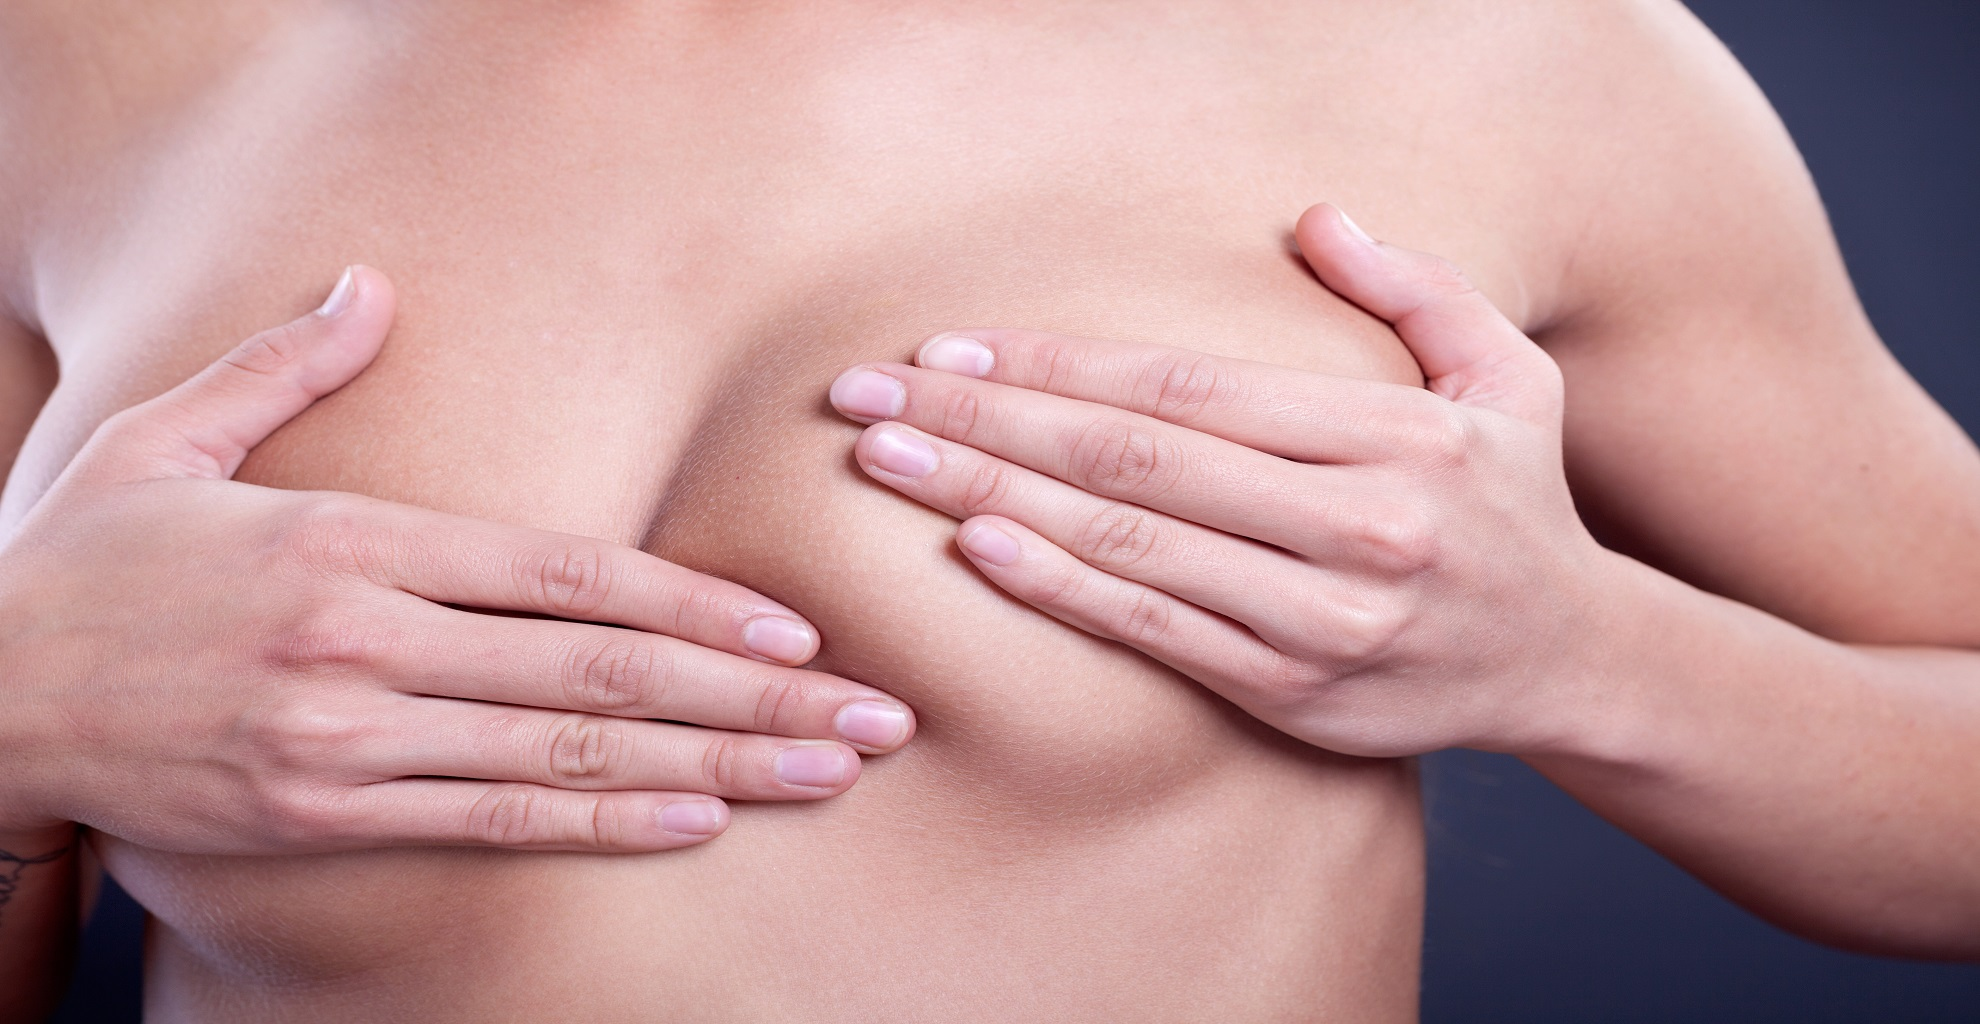 Caucasian adult woman examining her breast for lumps or signs of breast cancer